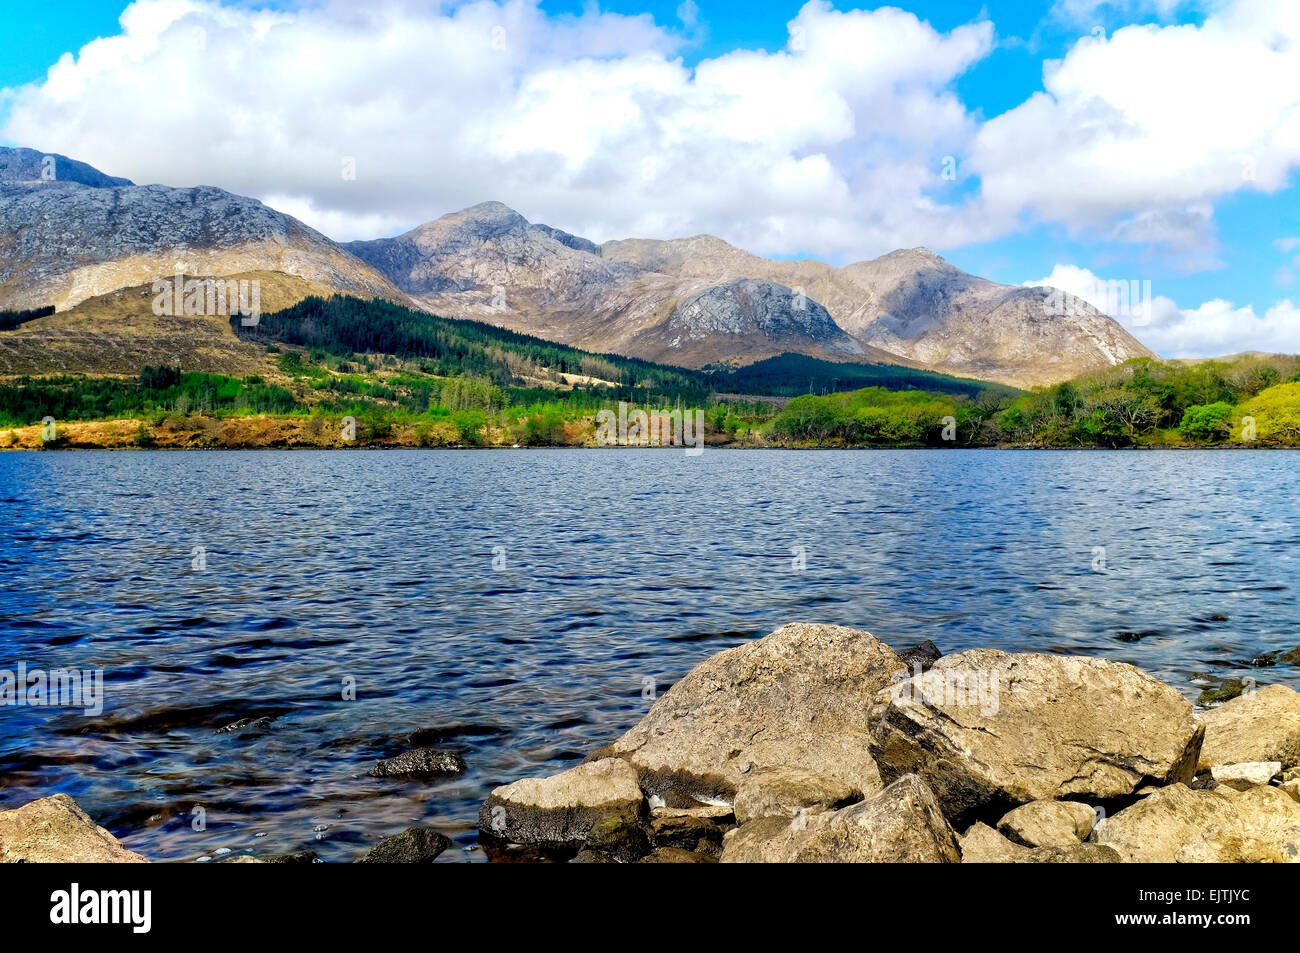 A view of Lough Inagh, Connemara, Ireland, - Stock Image